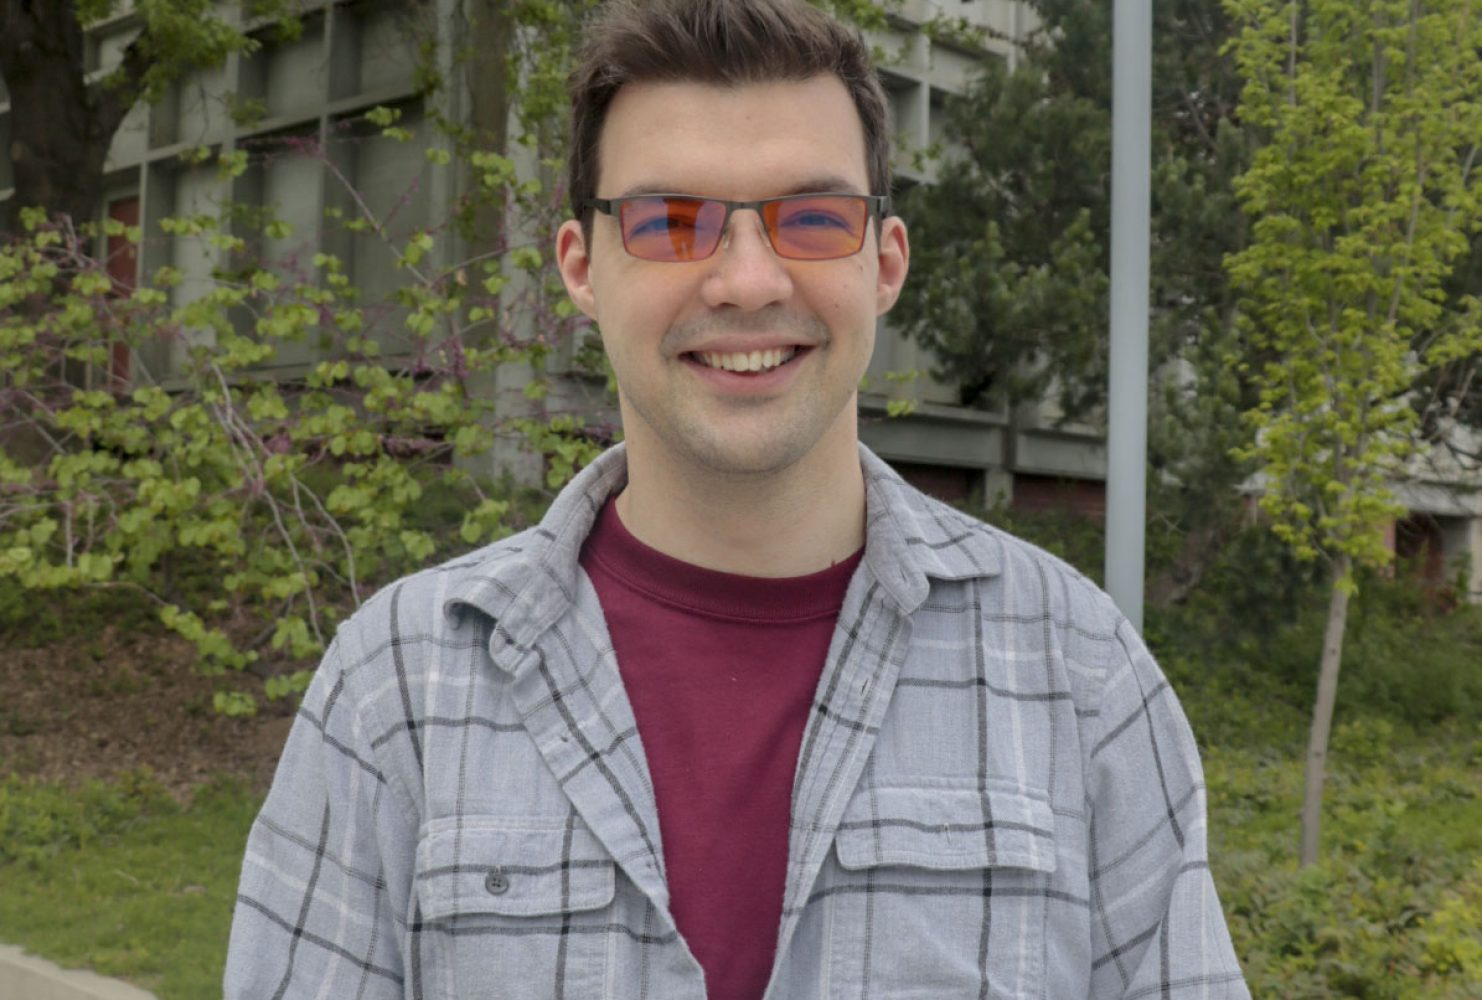 """They manage [the] schools legislator, things to do with students privileges. No, I didn't vote."" – Fabian Radu 